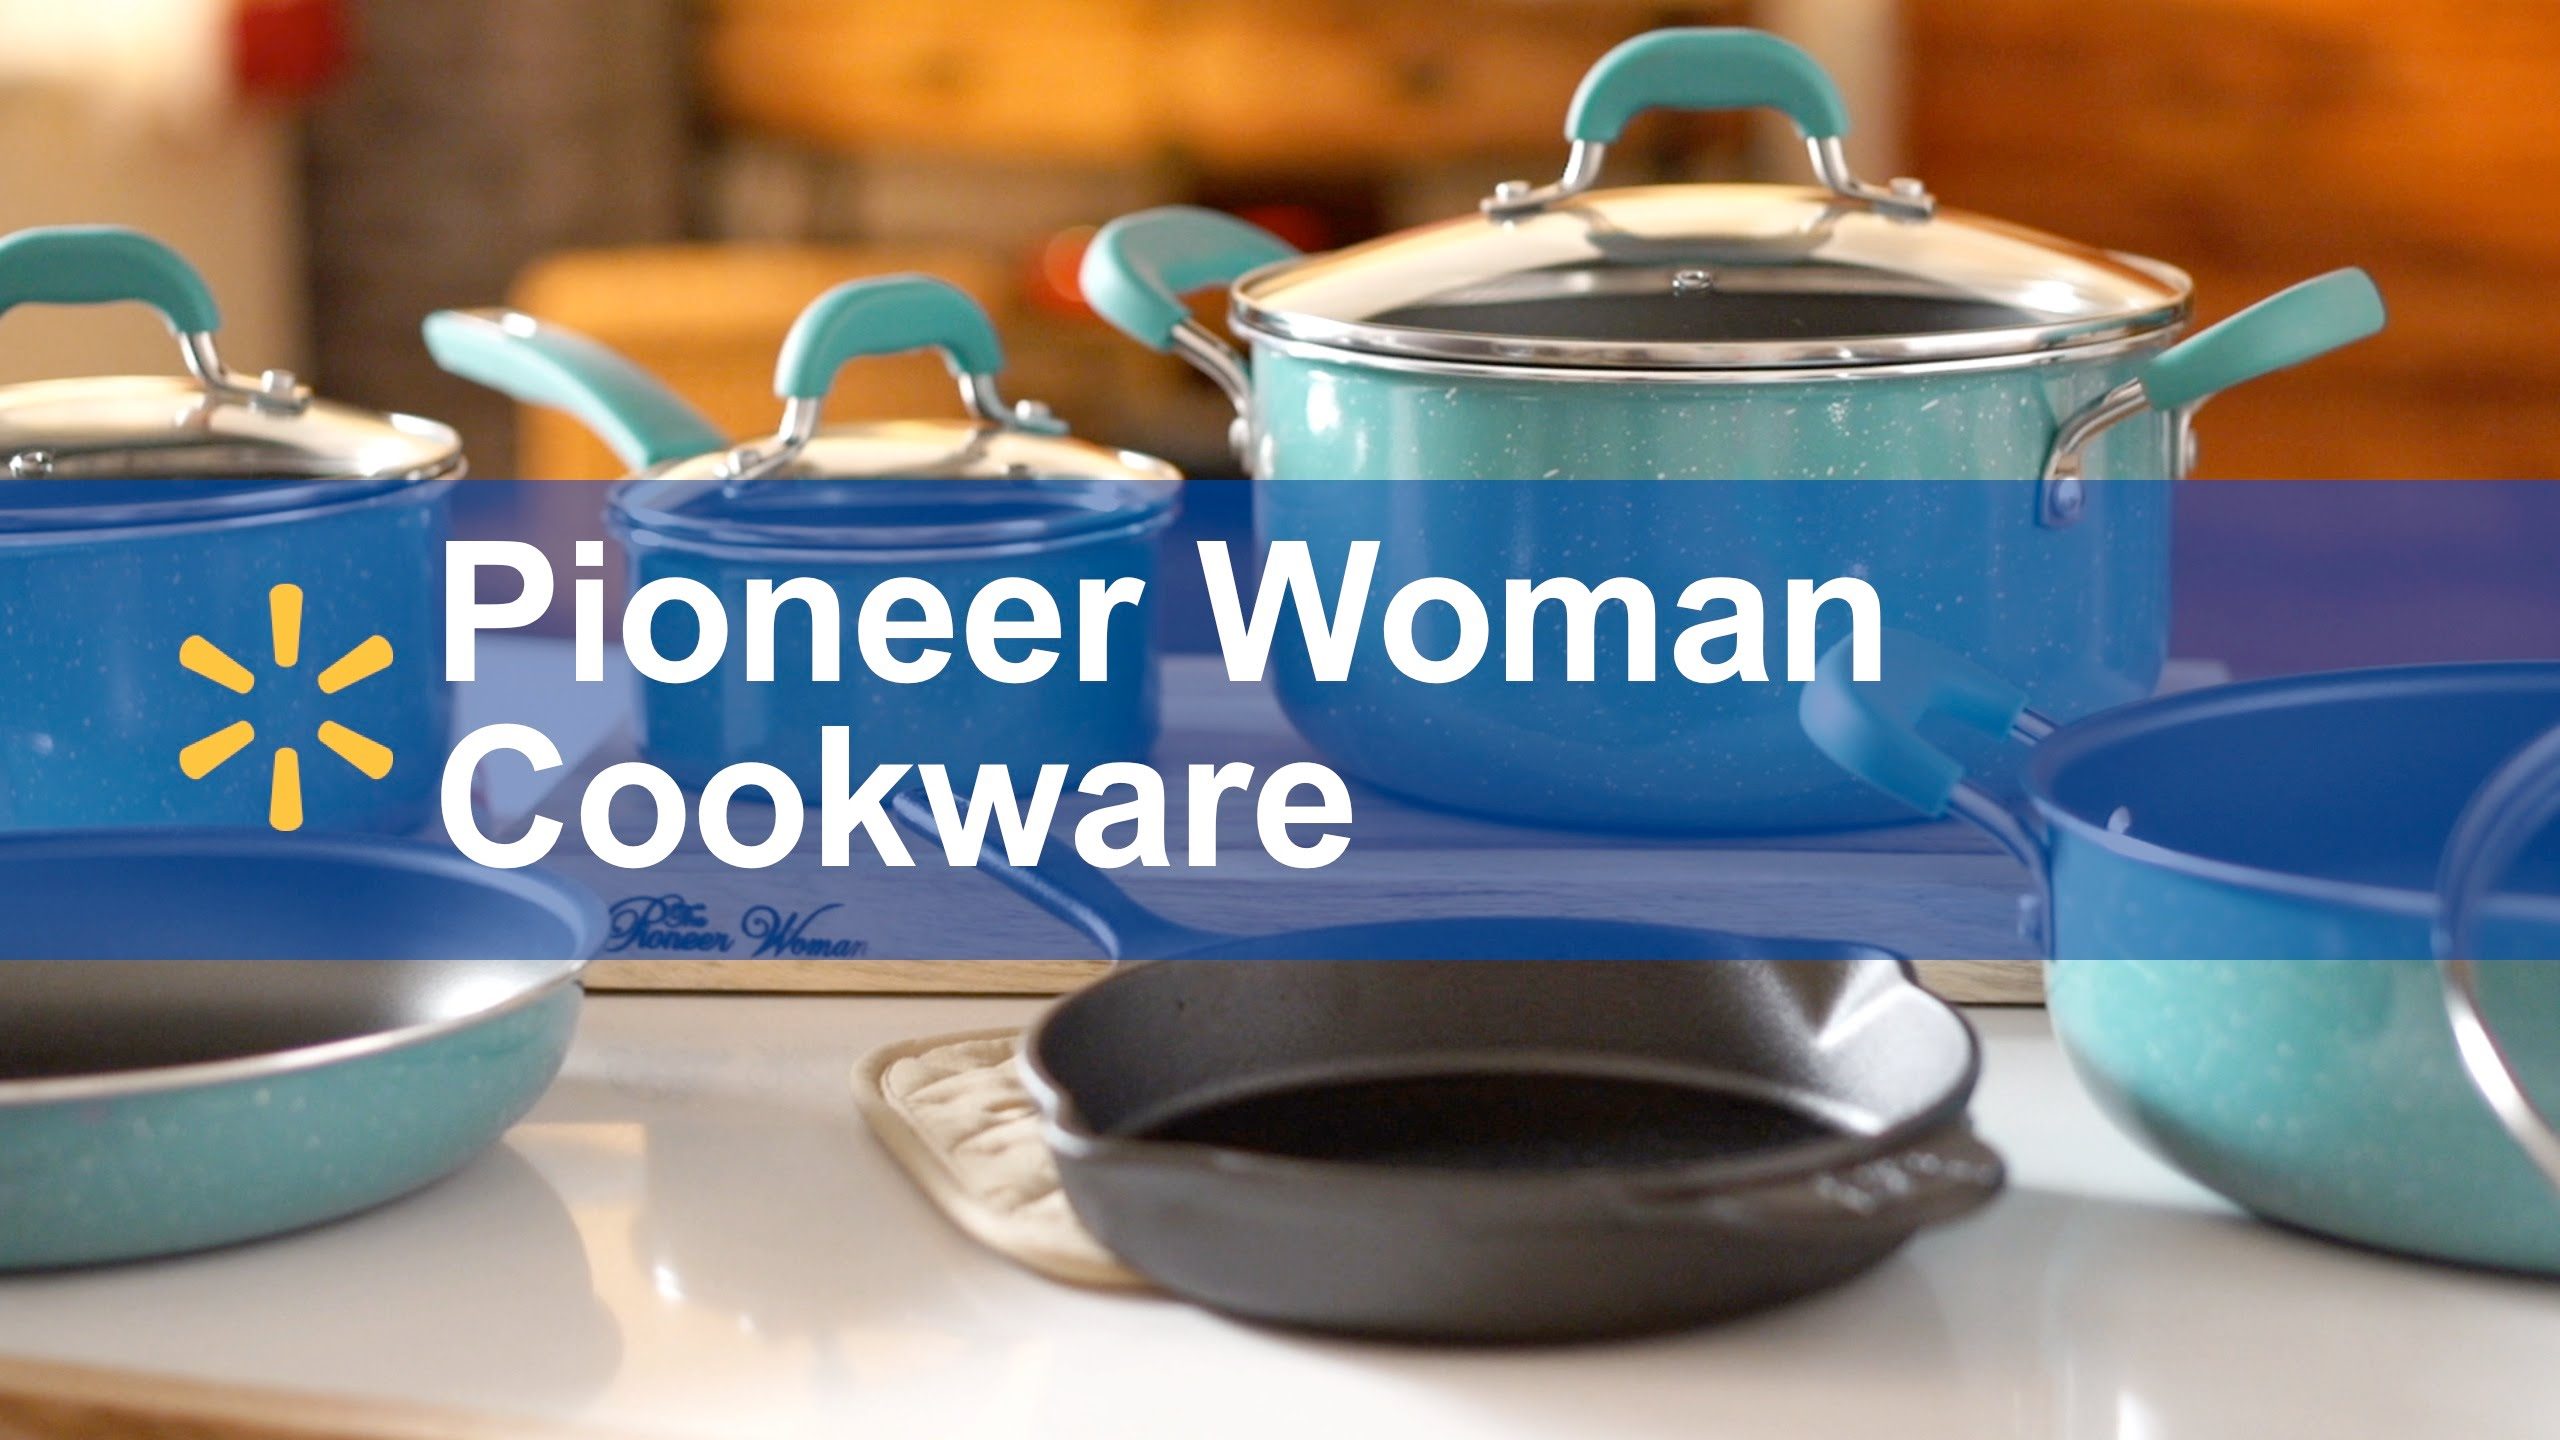 Enter for a Chance to Win a Set of Cookware from The Pioneer Woman, Ree Drummond!